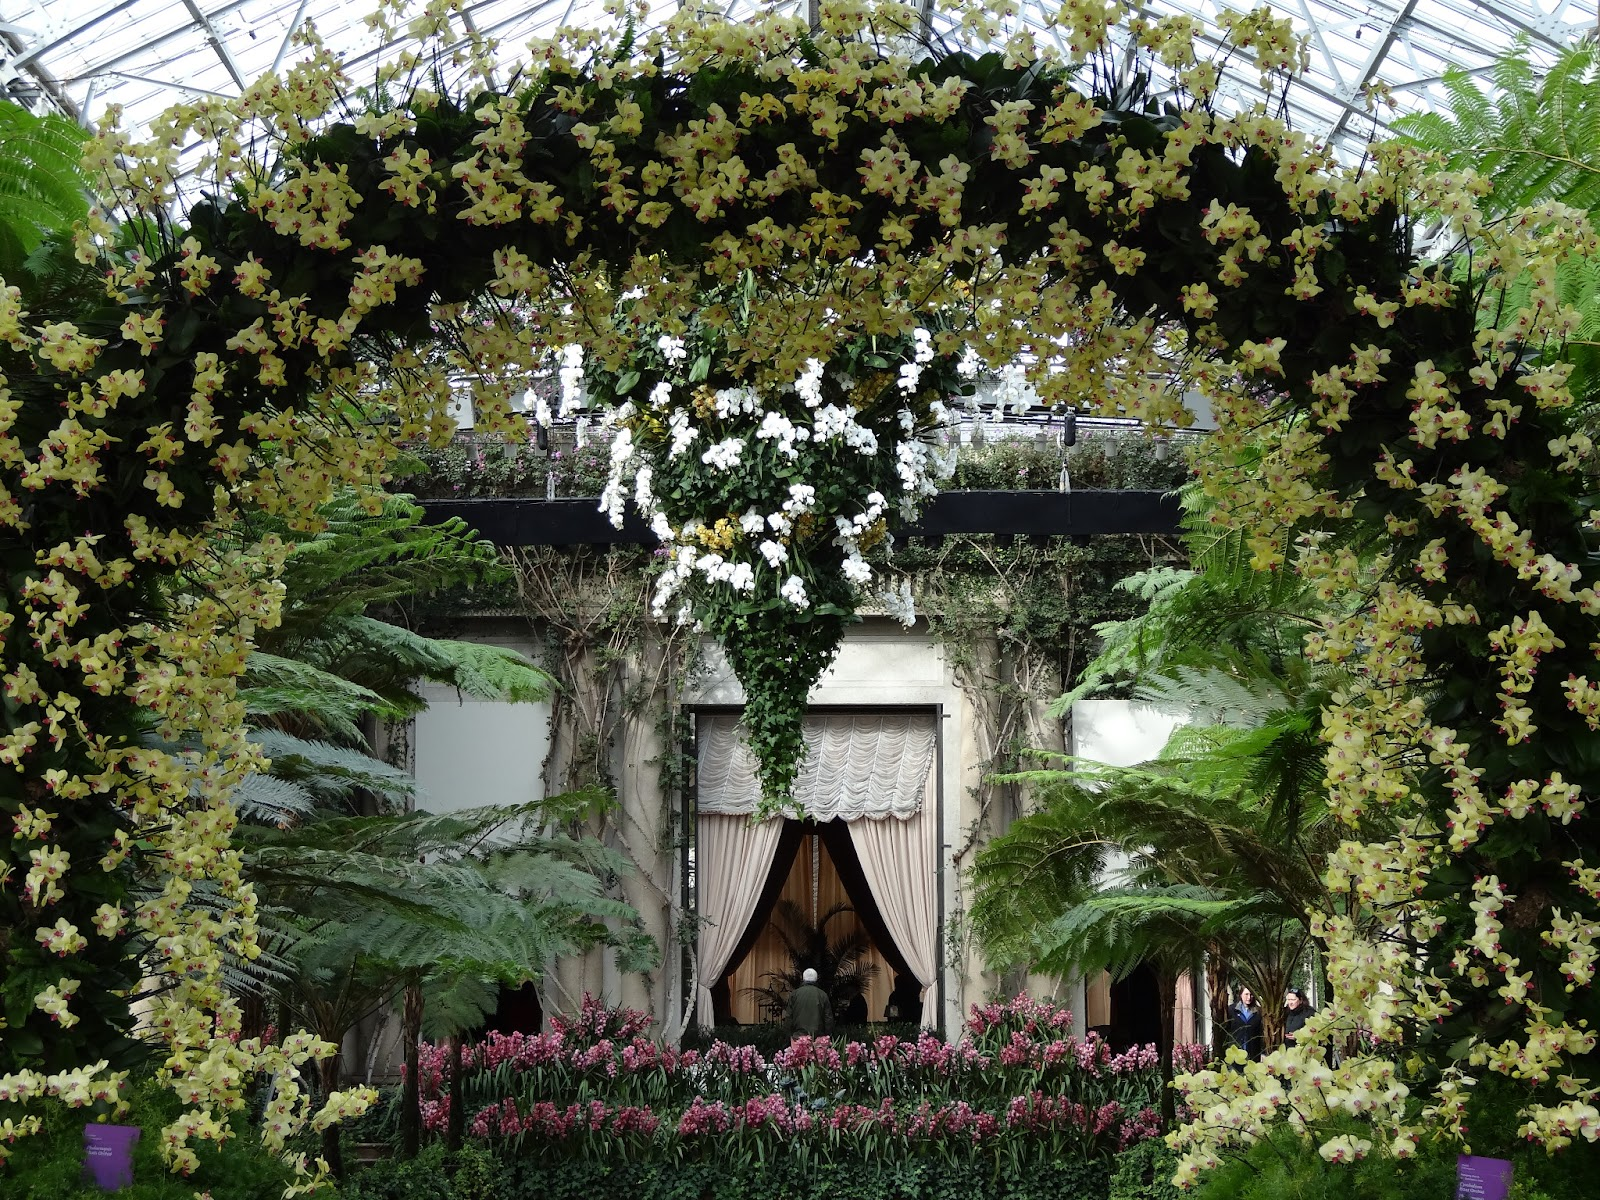 This Amazing Orchid Arch Looks Even More Impressive In Person. I Suspect It  Is Over Twenty Feet High. Behind It You Can See Another Huge Orchid Display  ...